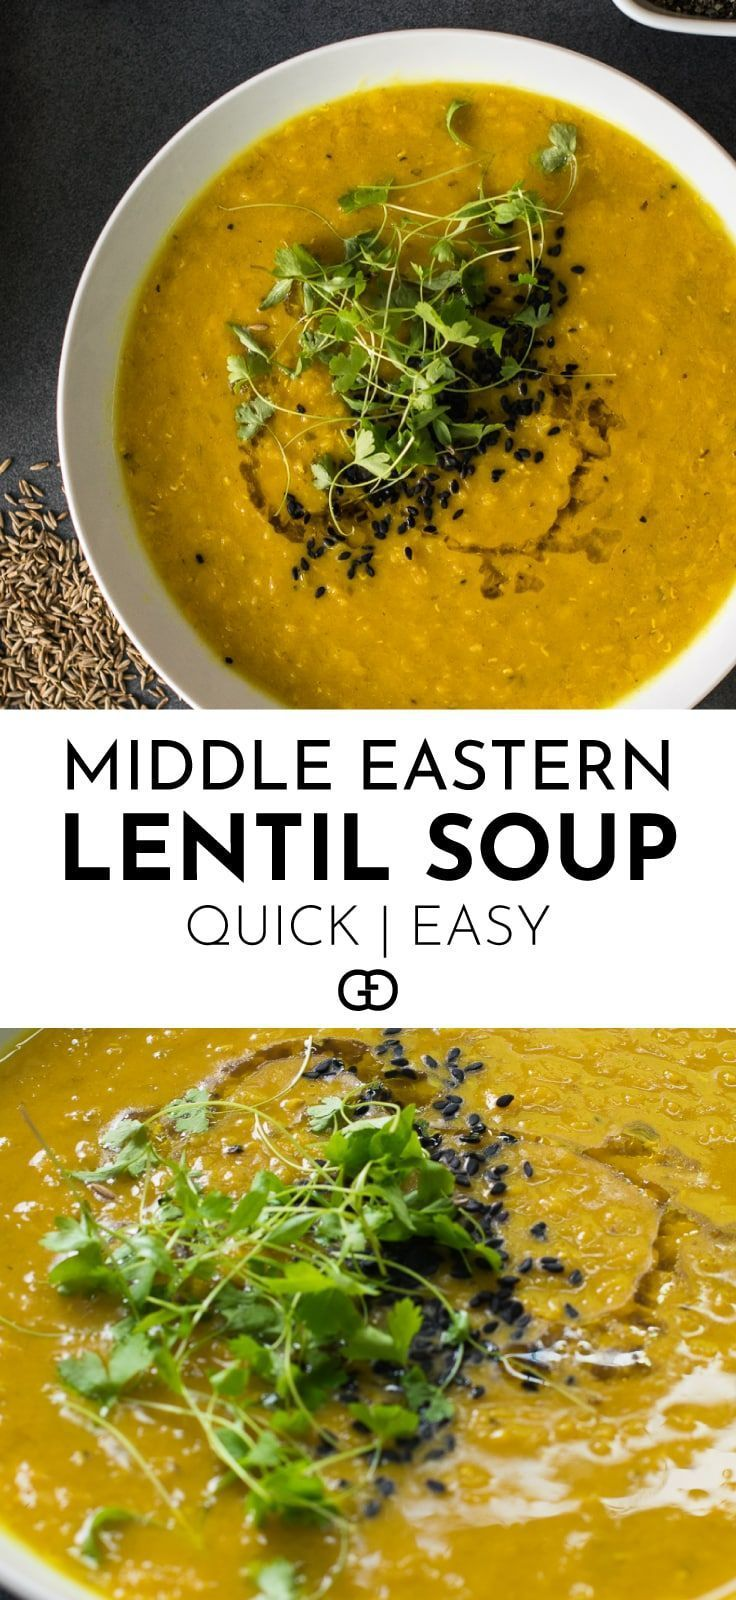 and Easy Middle Eastern Lentil Soup This authentic middle eastern lentil soup is made with red lentils, seasoned with cumin and turmeric! It's super quick and easy to do! Perfect for dinner!This authentic middle eastern lentil soup is made with red lentils, seasoned with cumin and turmeric! It's super quick and easy to do! Per...